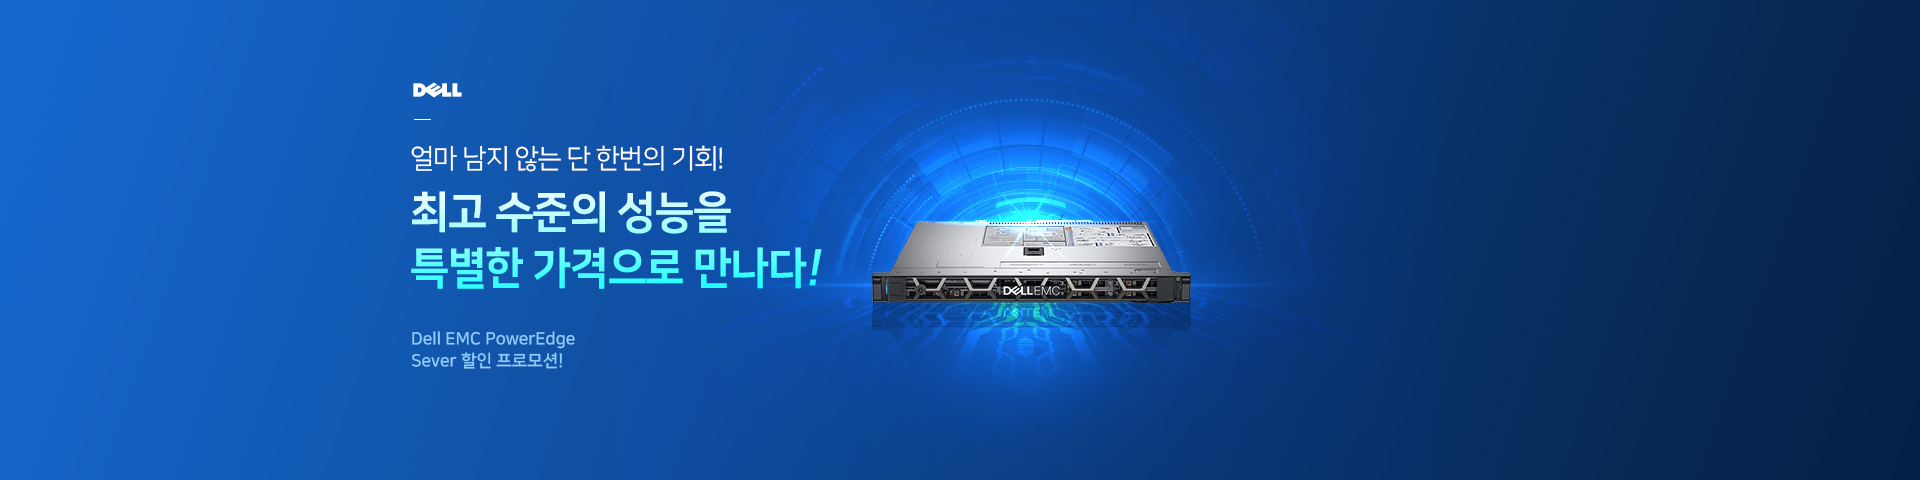 [Dell] EMC PowerEdge Server 프로모션